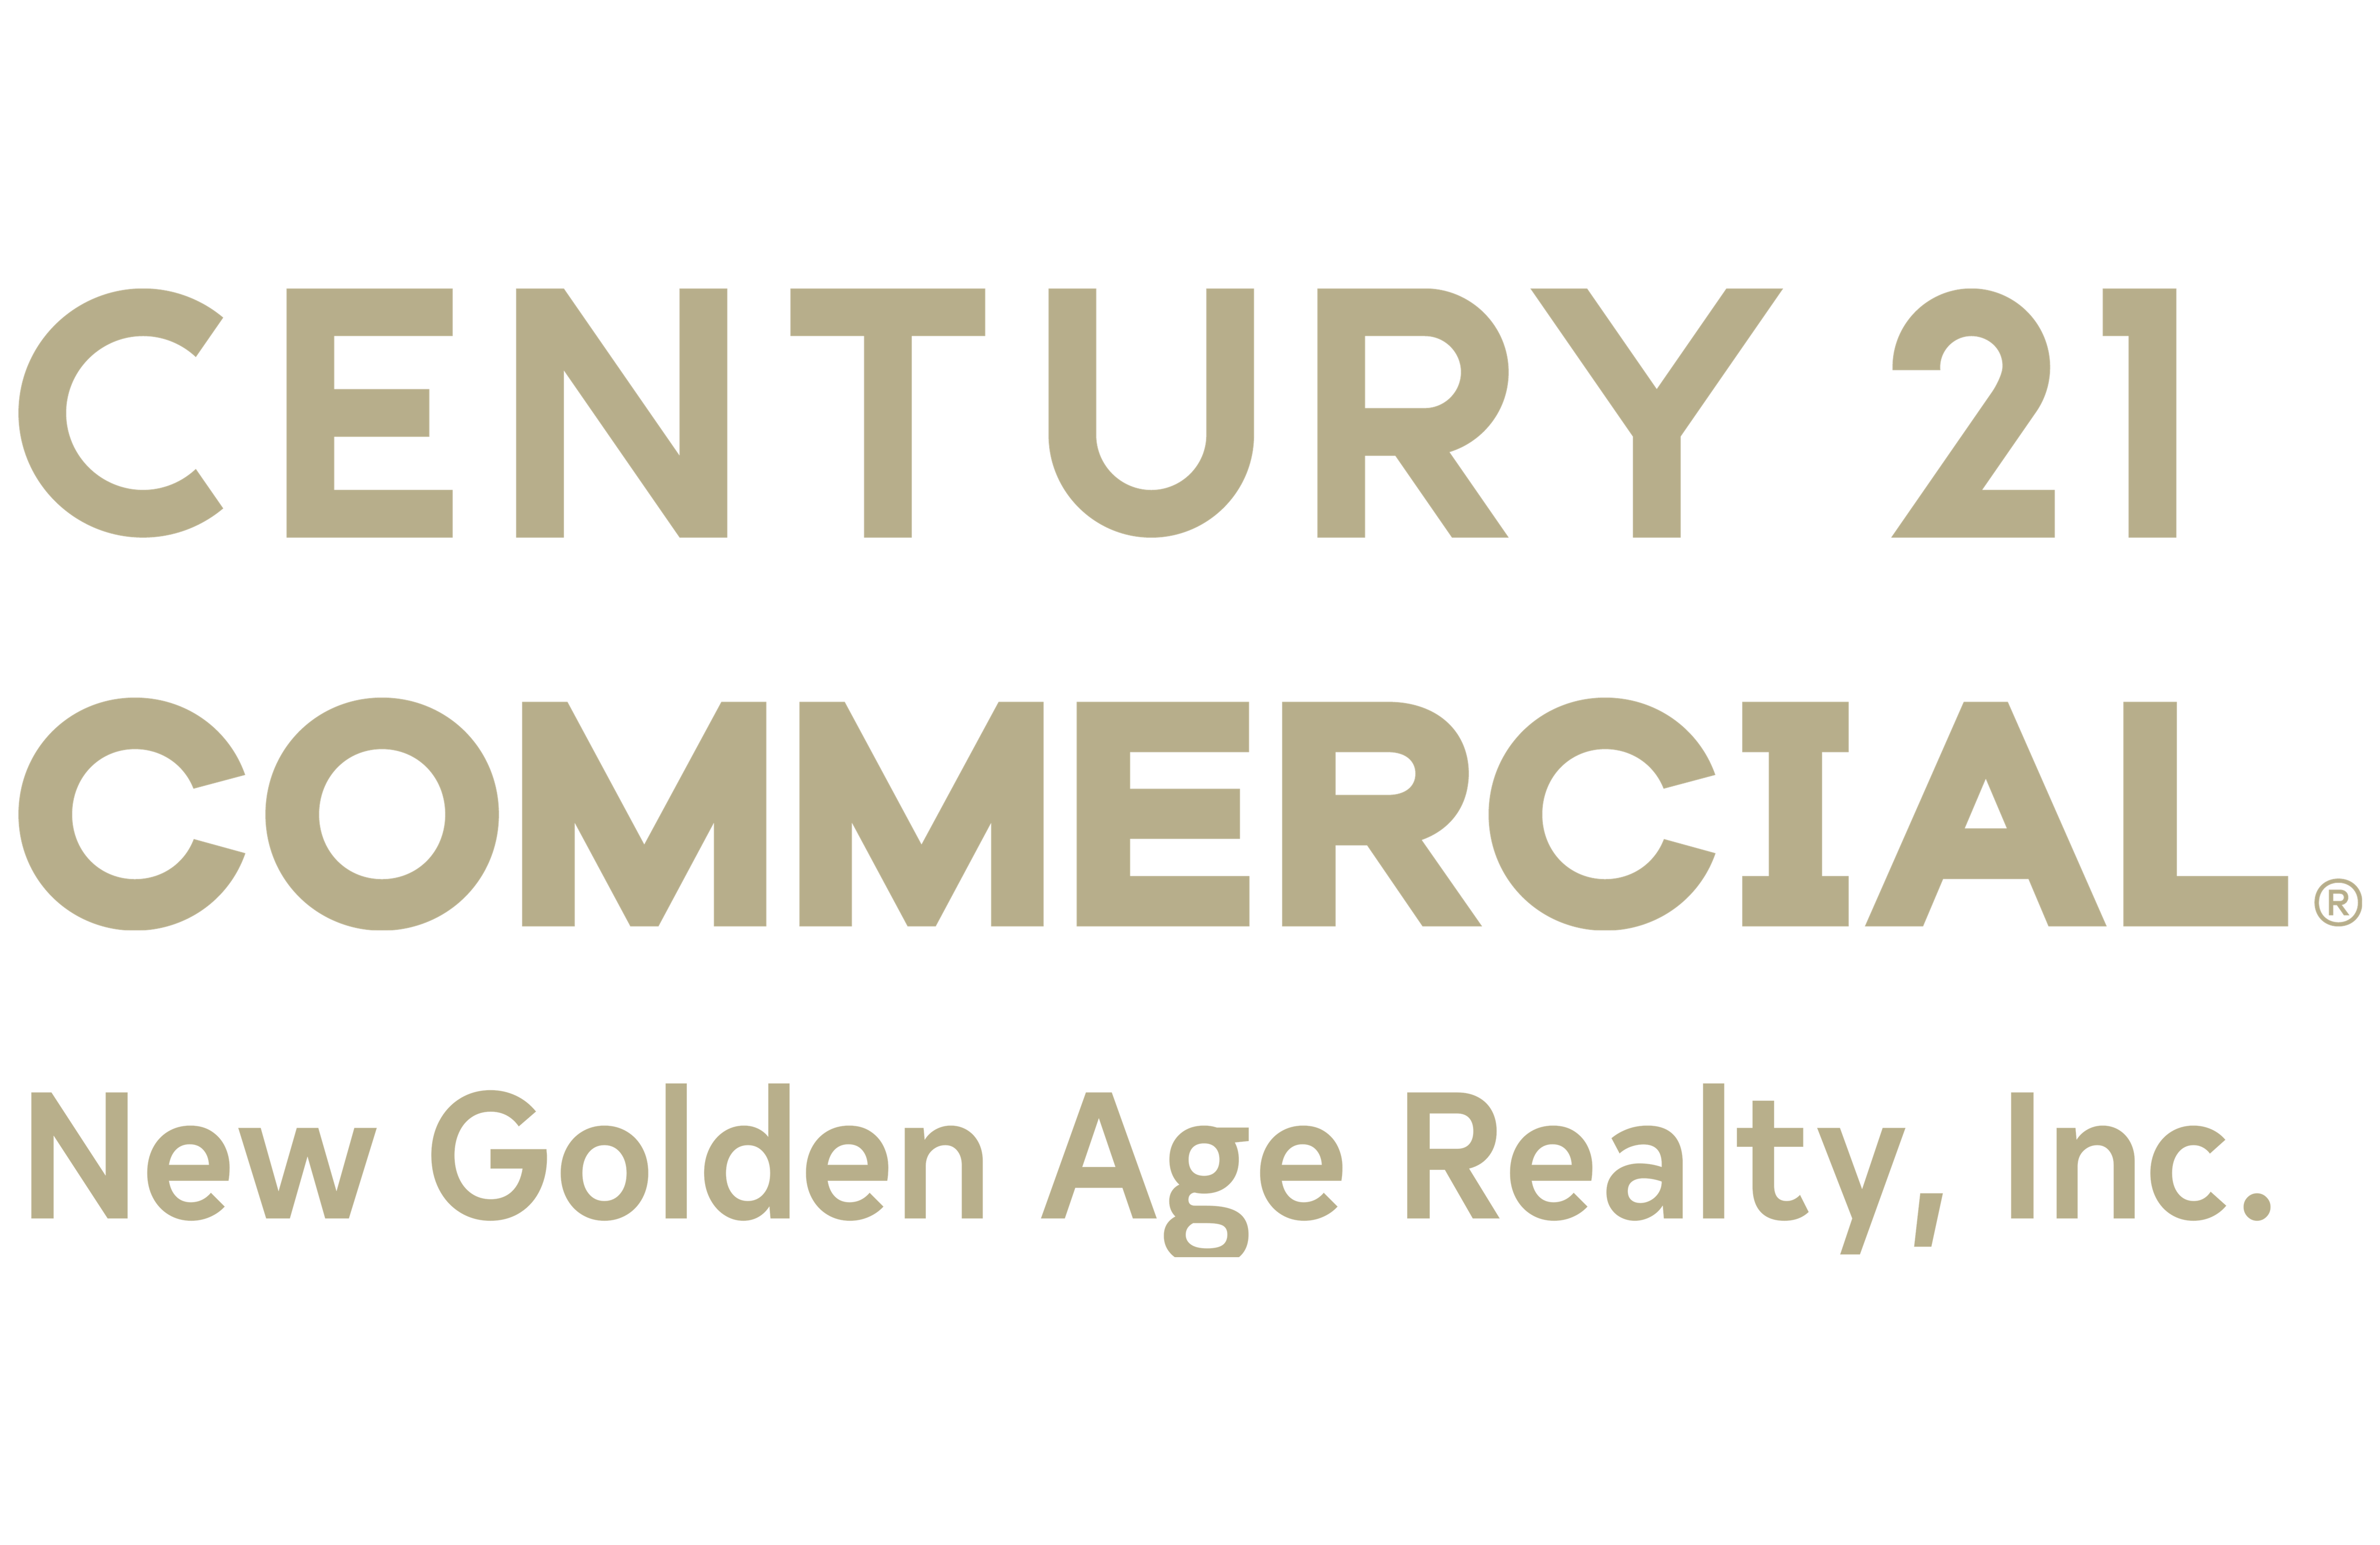 CENTURY 21 New Golden Age Realty, Inc.